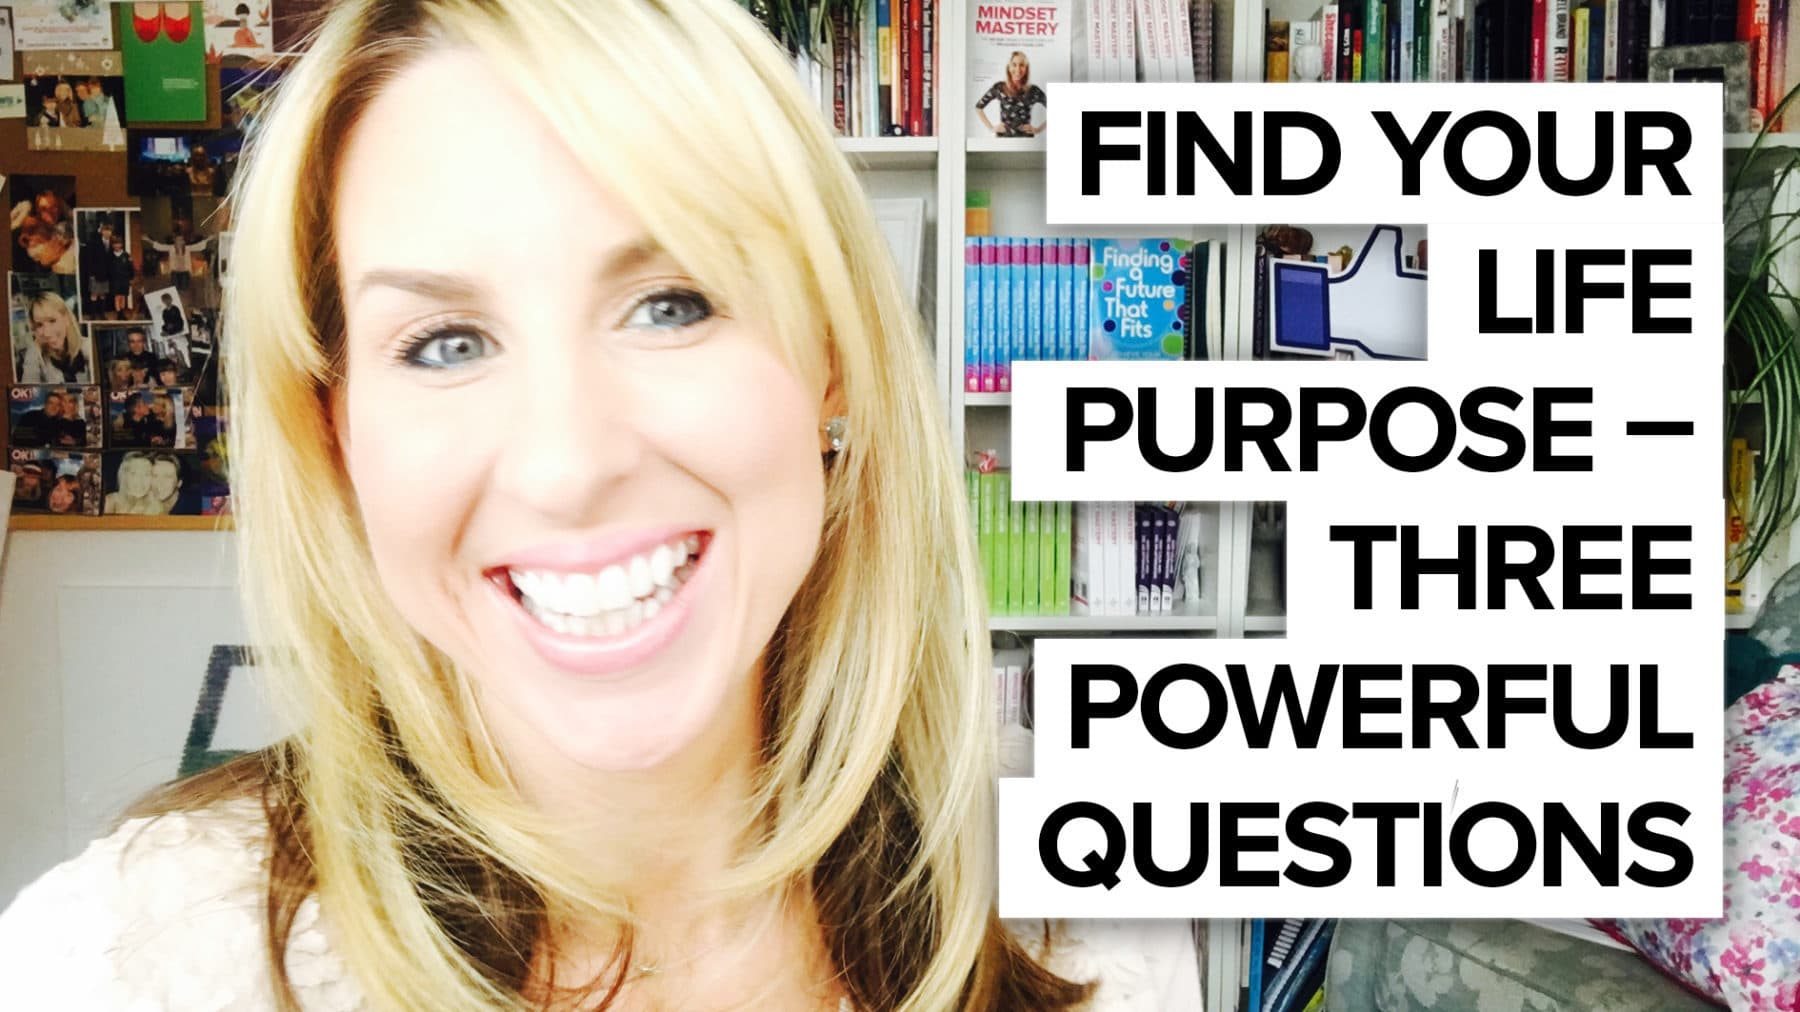 Find your life purpose – three powerful questions!